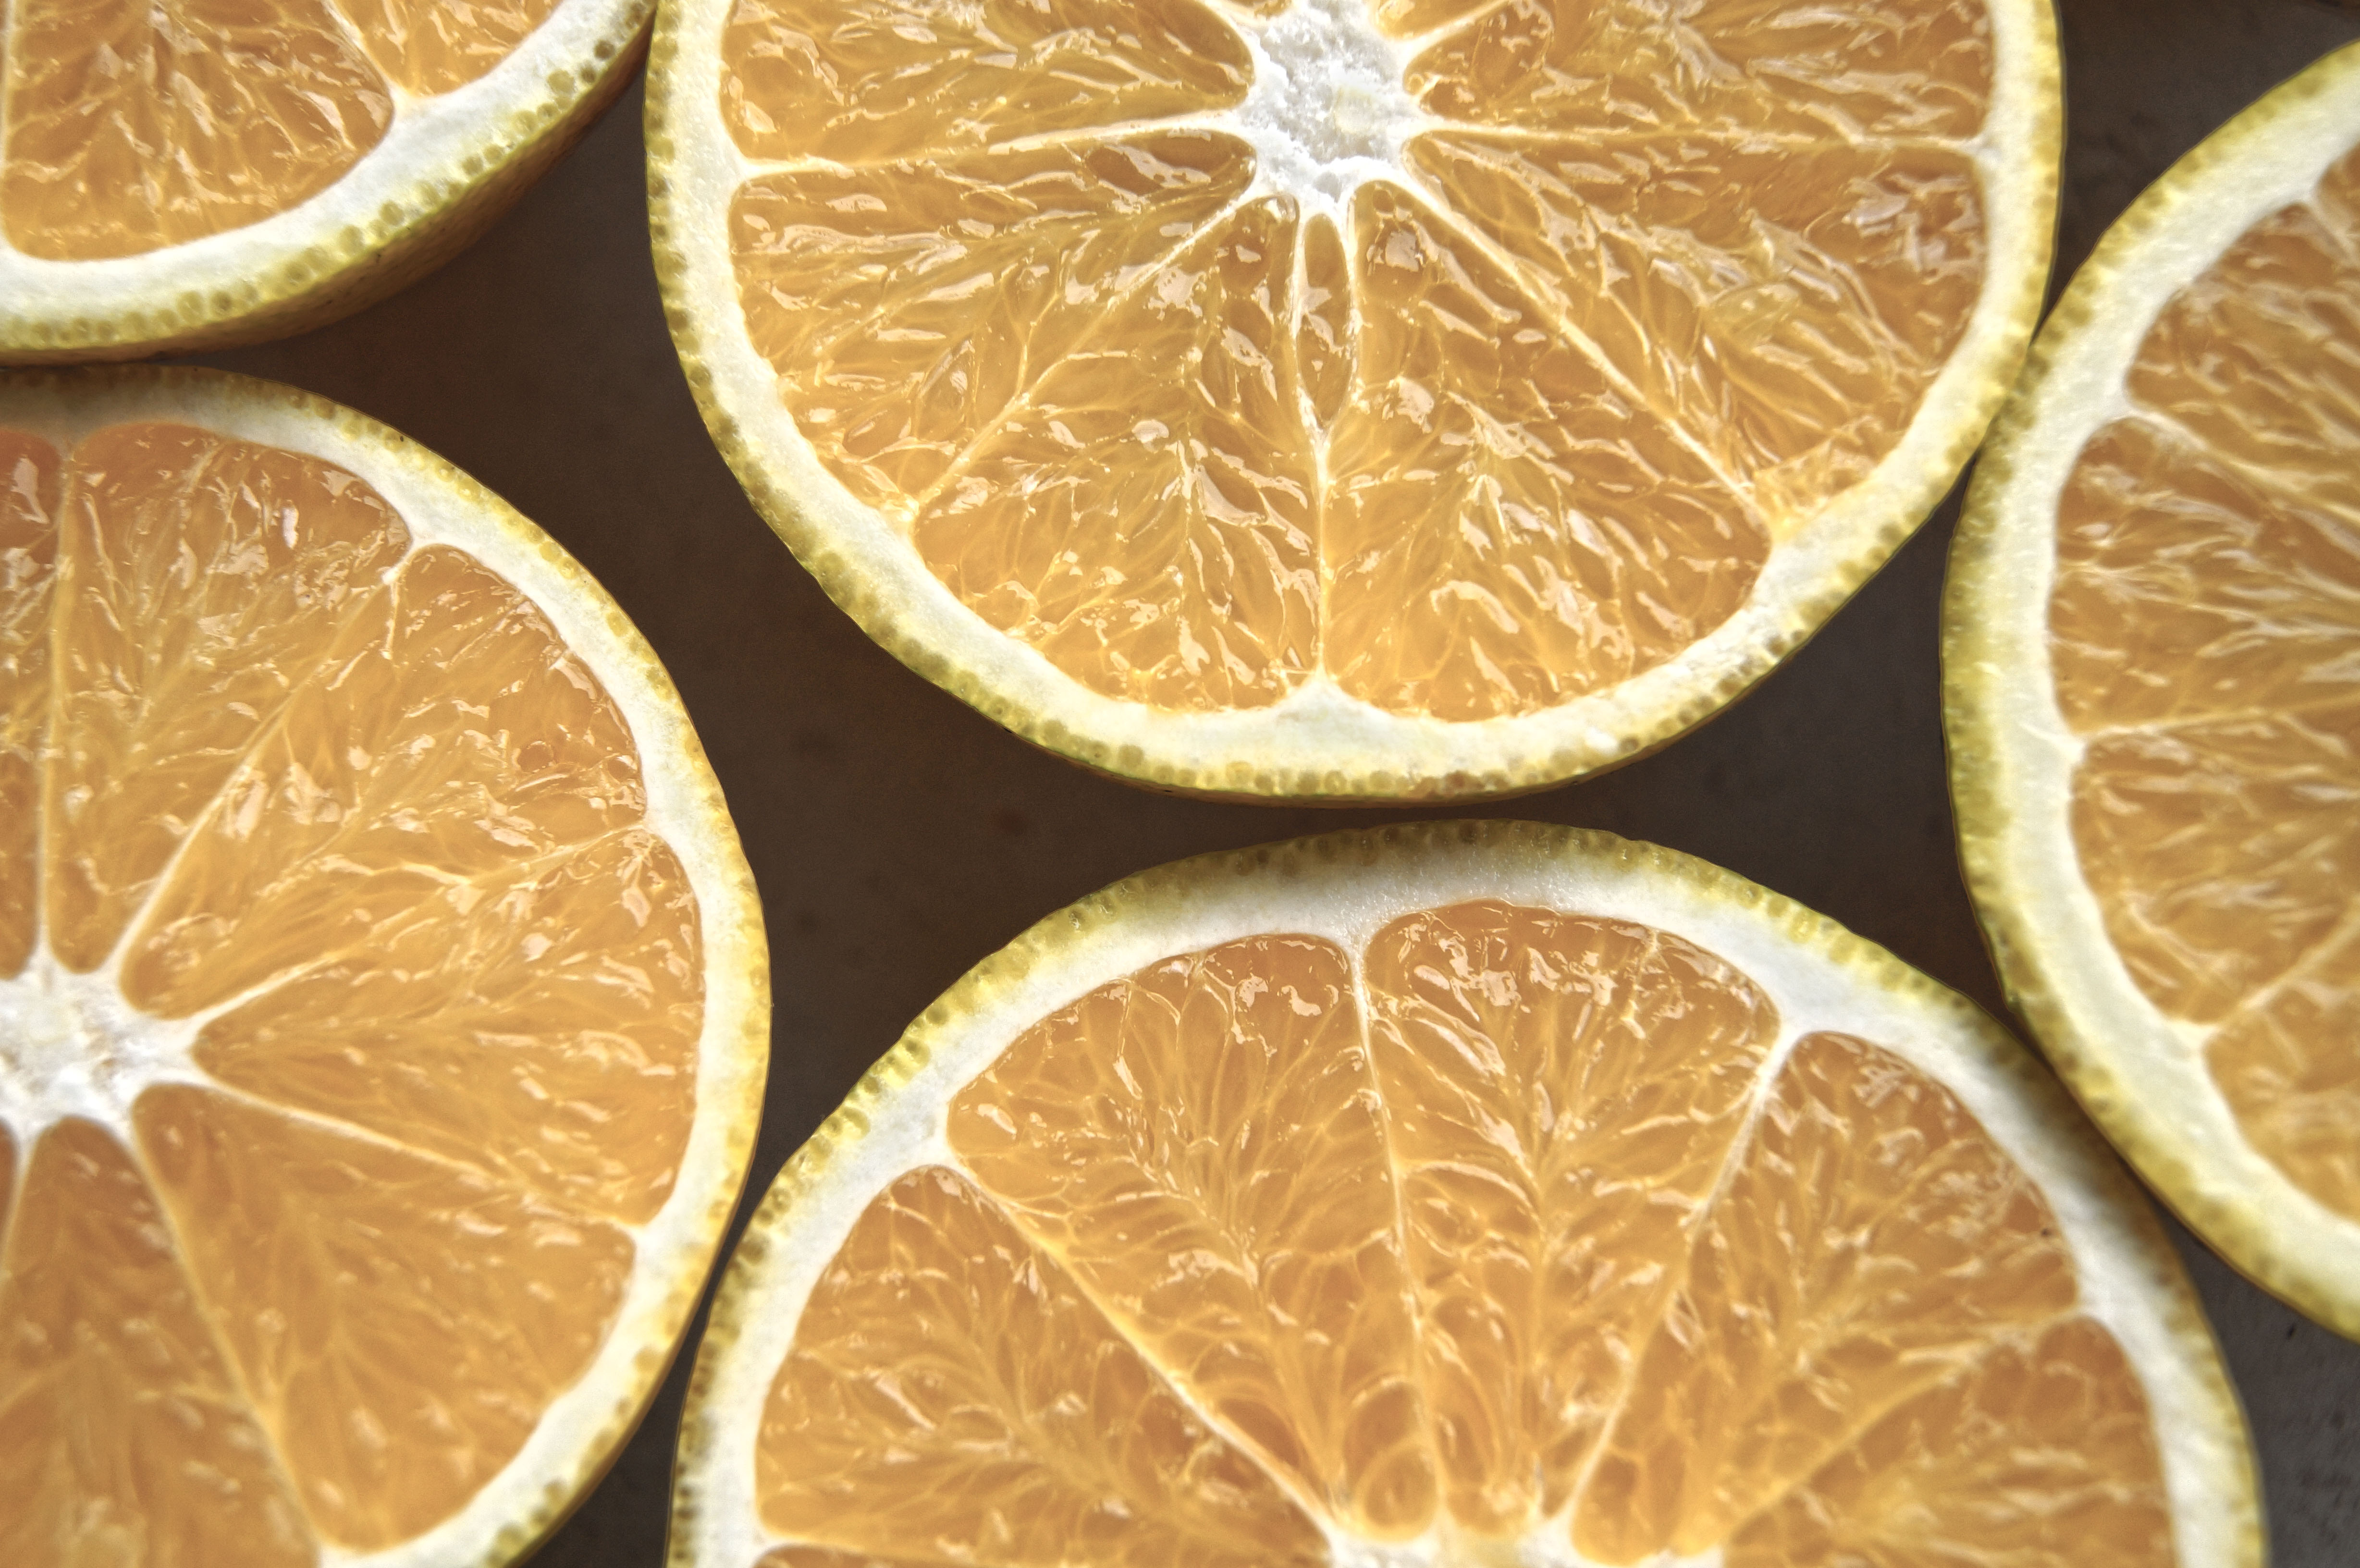 65572 download wallpaper Food, Oranges, Citrus, Slice, Section, Citruses screensavers and pictures for free